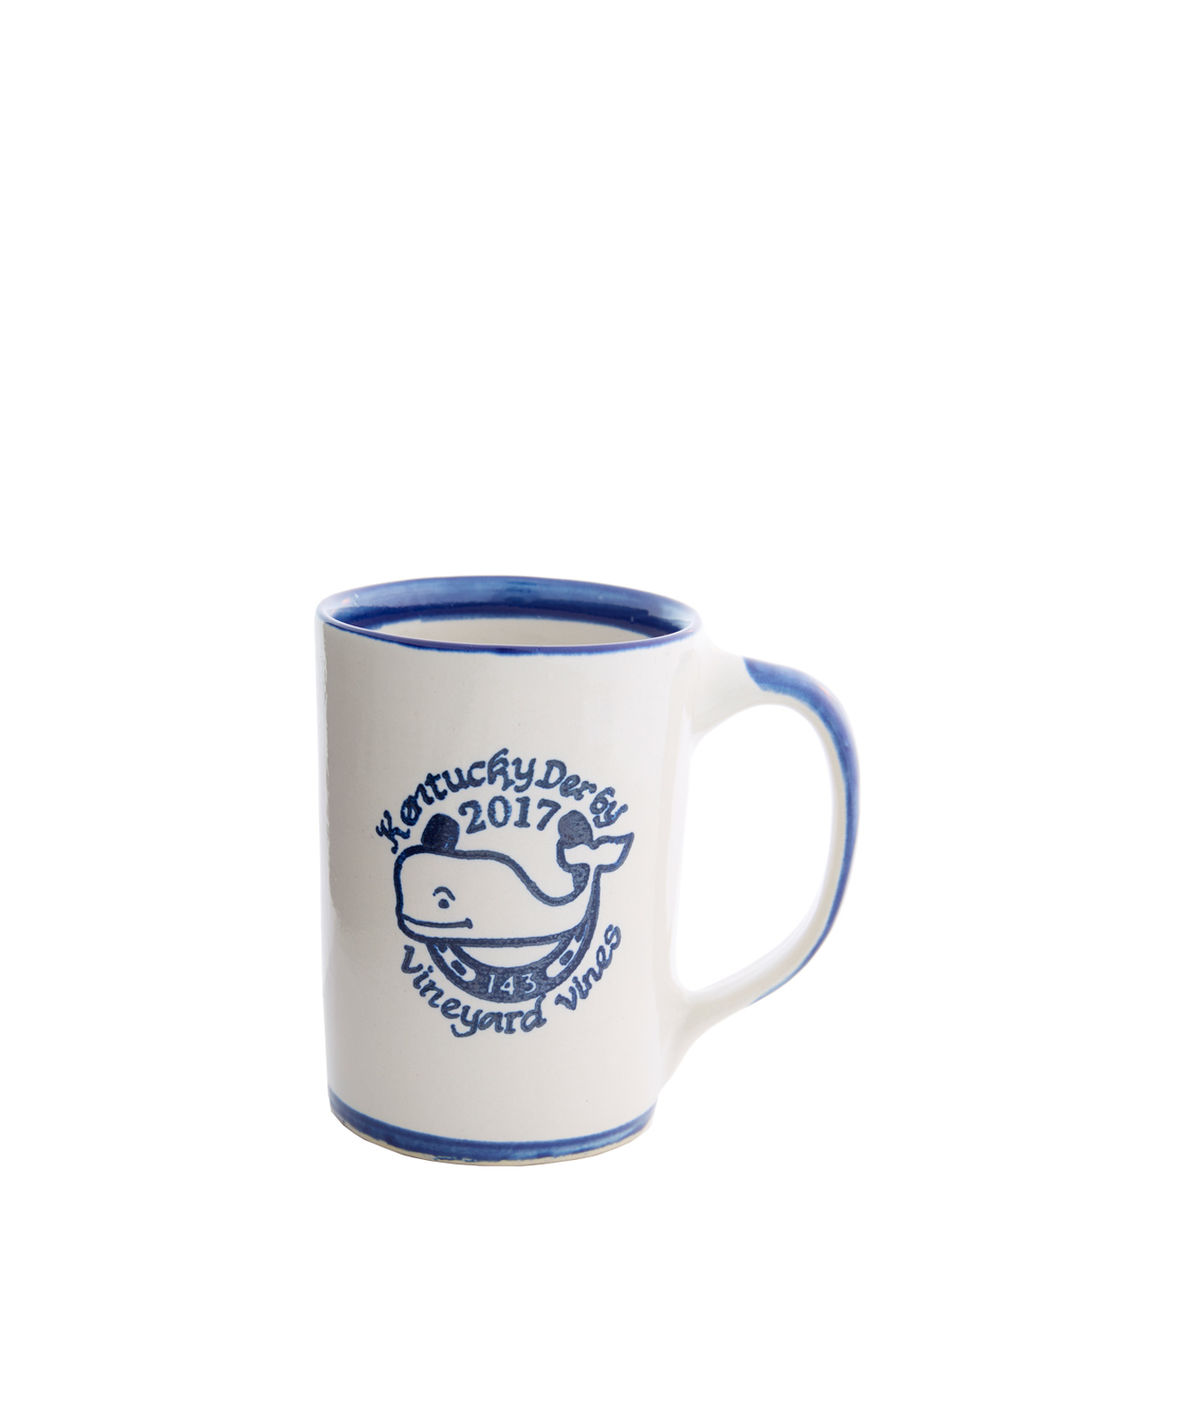 Vineyard Vines Derby Mug